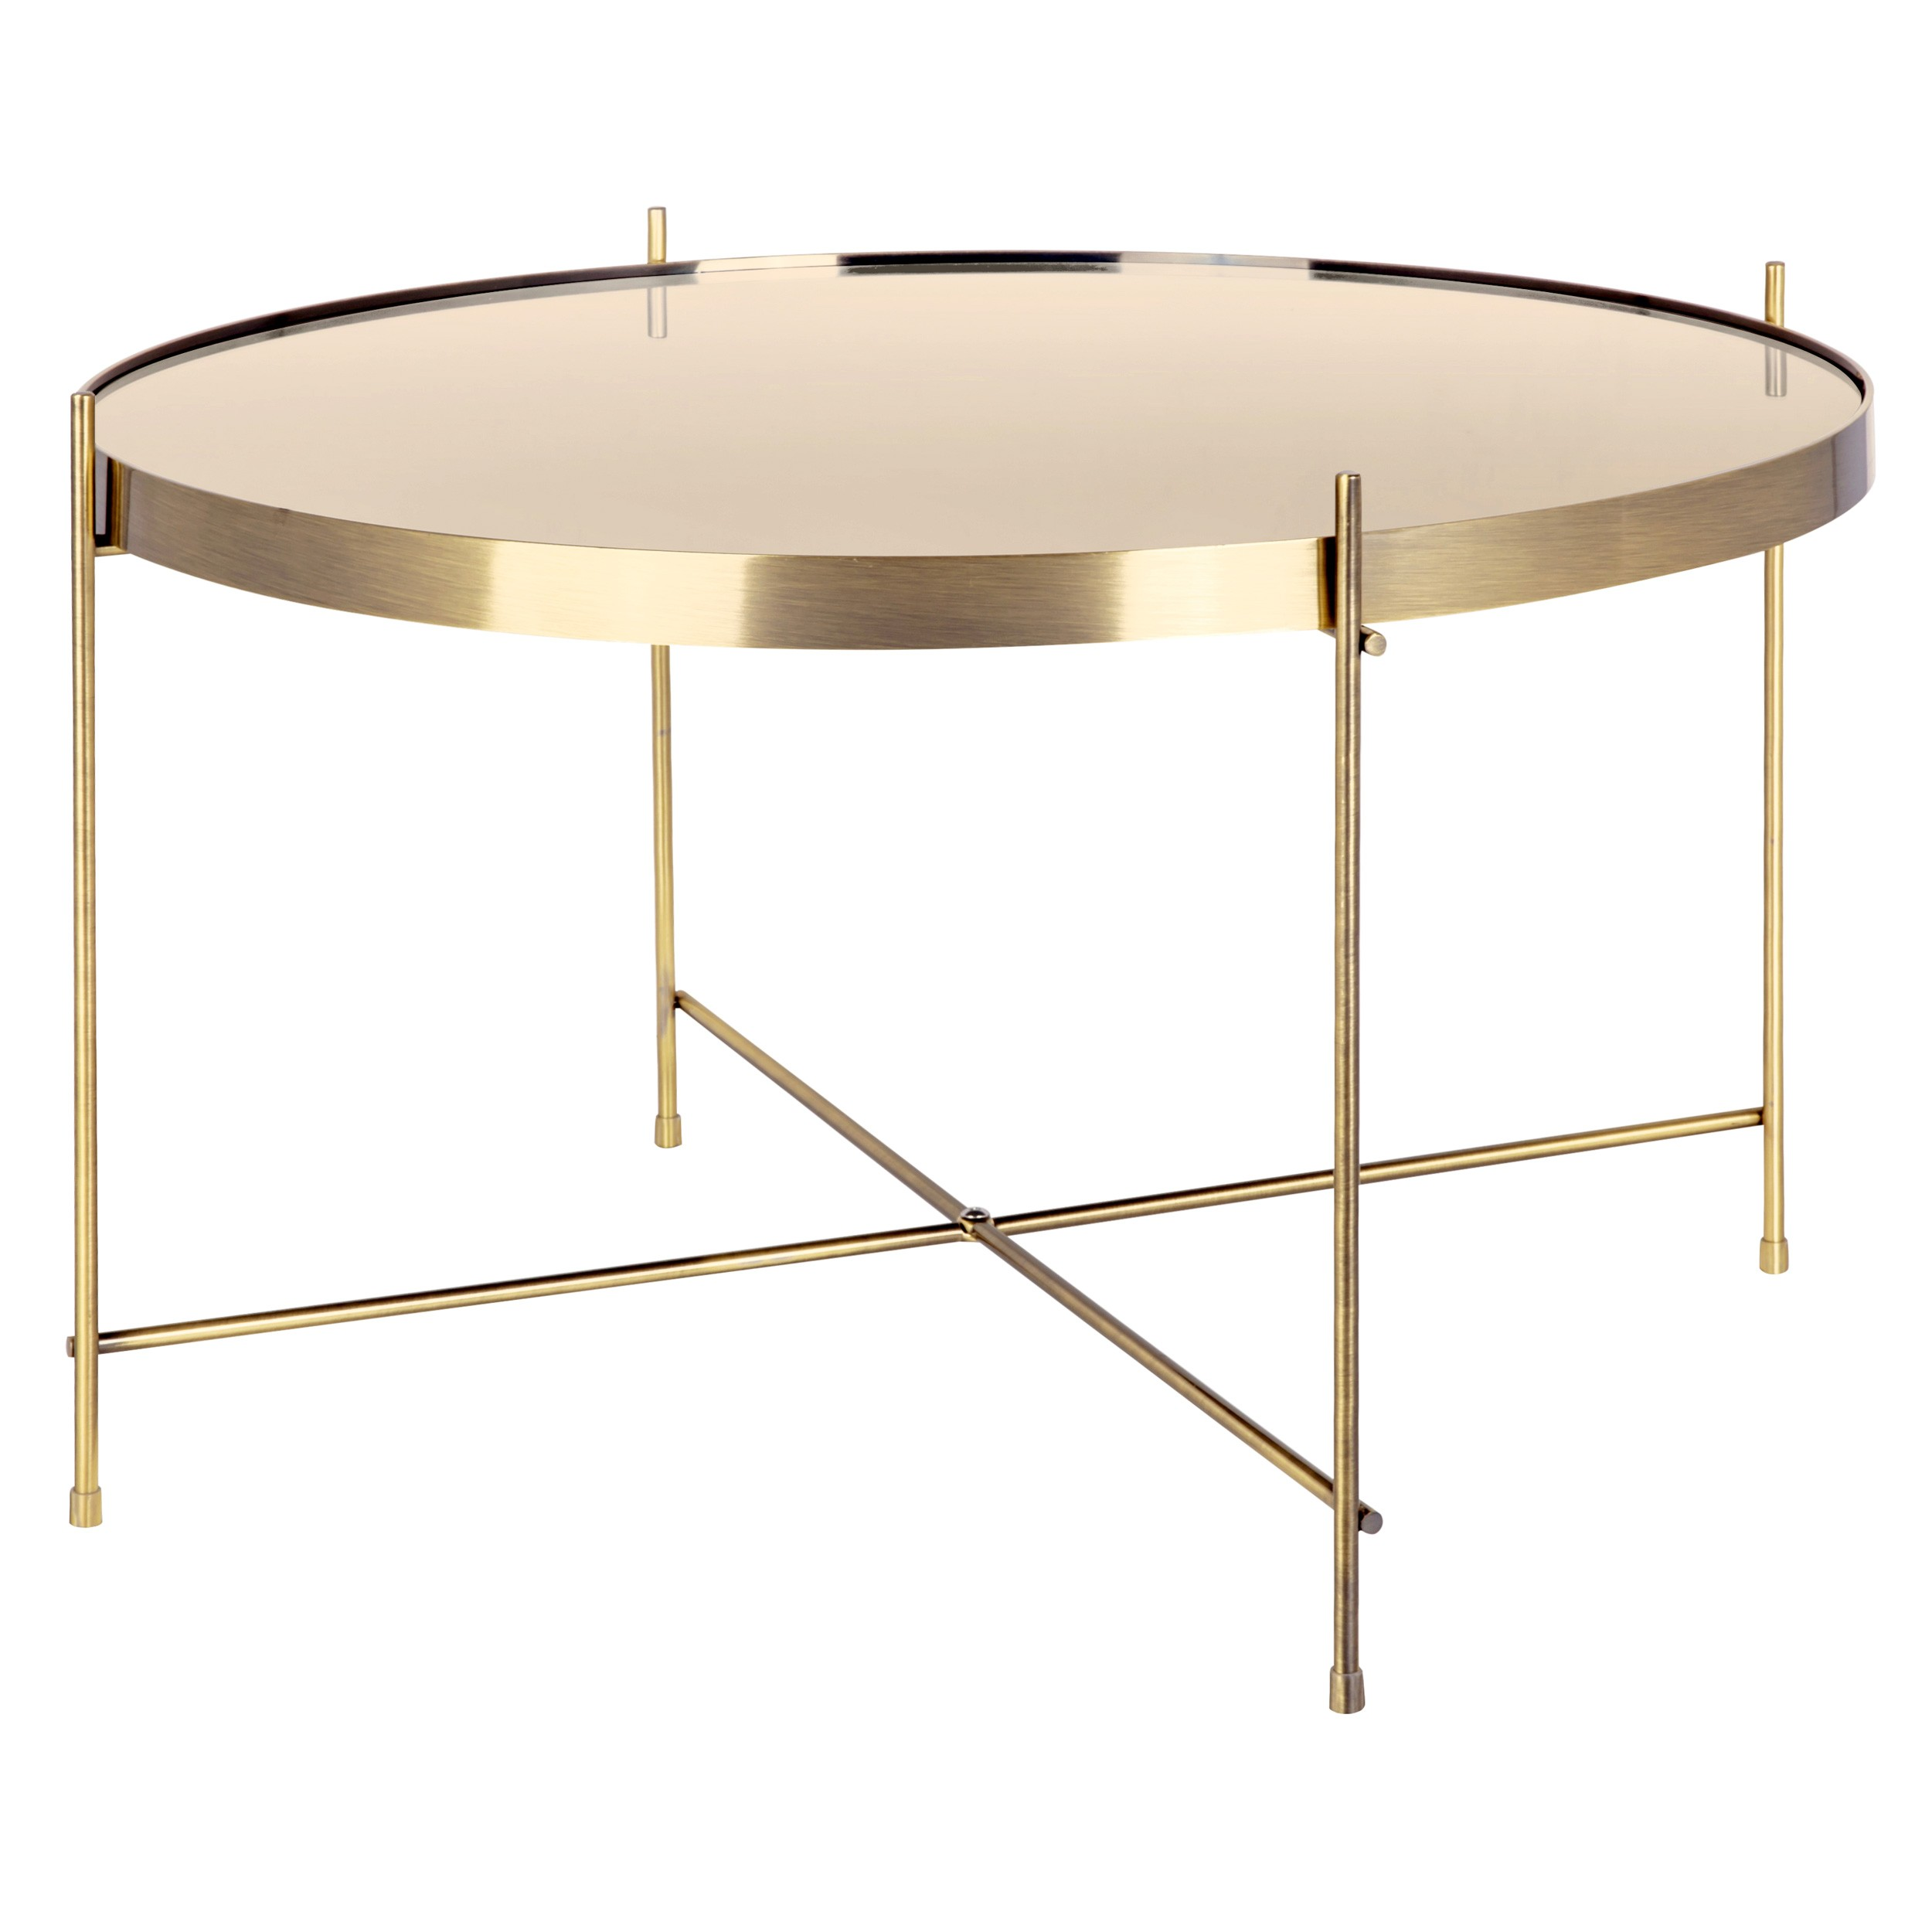 Or Valdo M Table Basse Ronde A3q45RjL